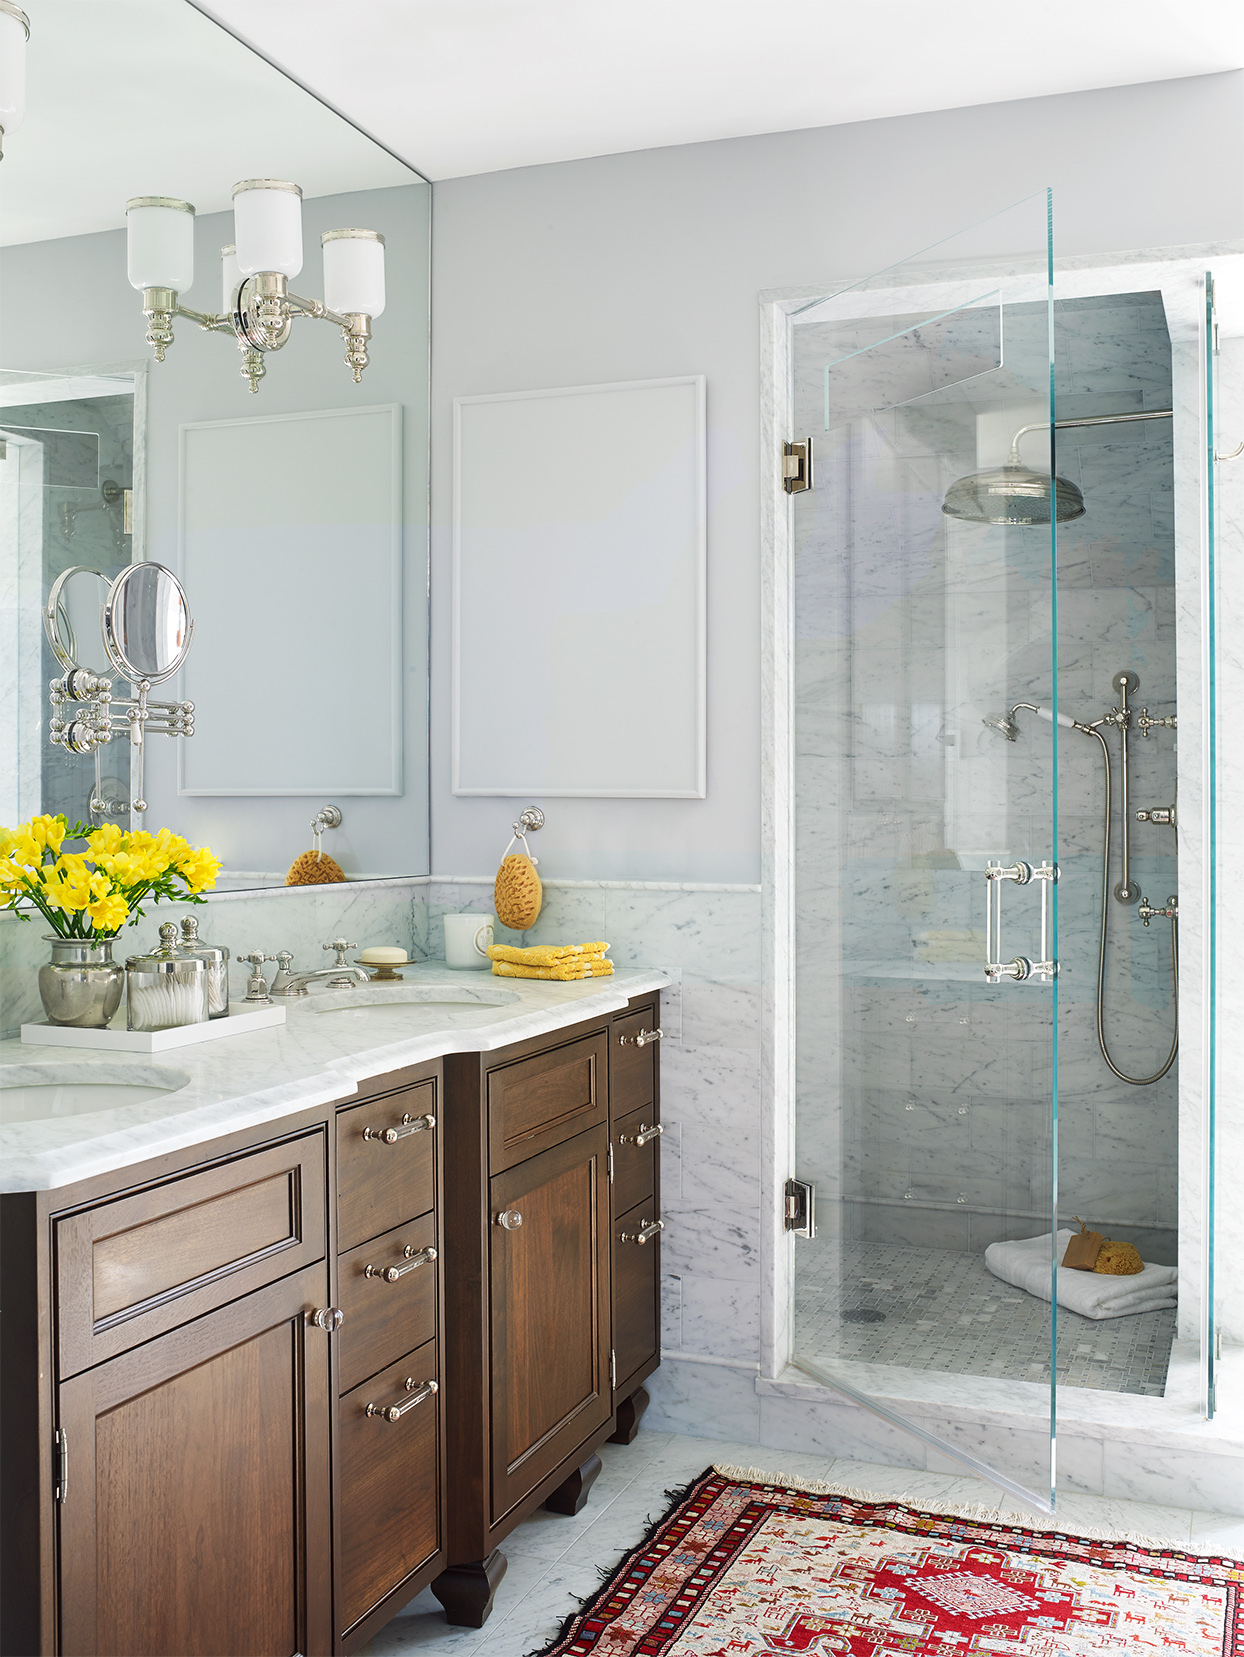 20 Stunning Walk-In Shower Ideas For Small Bathrooms | Better Homes & Gardens